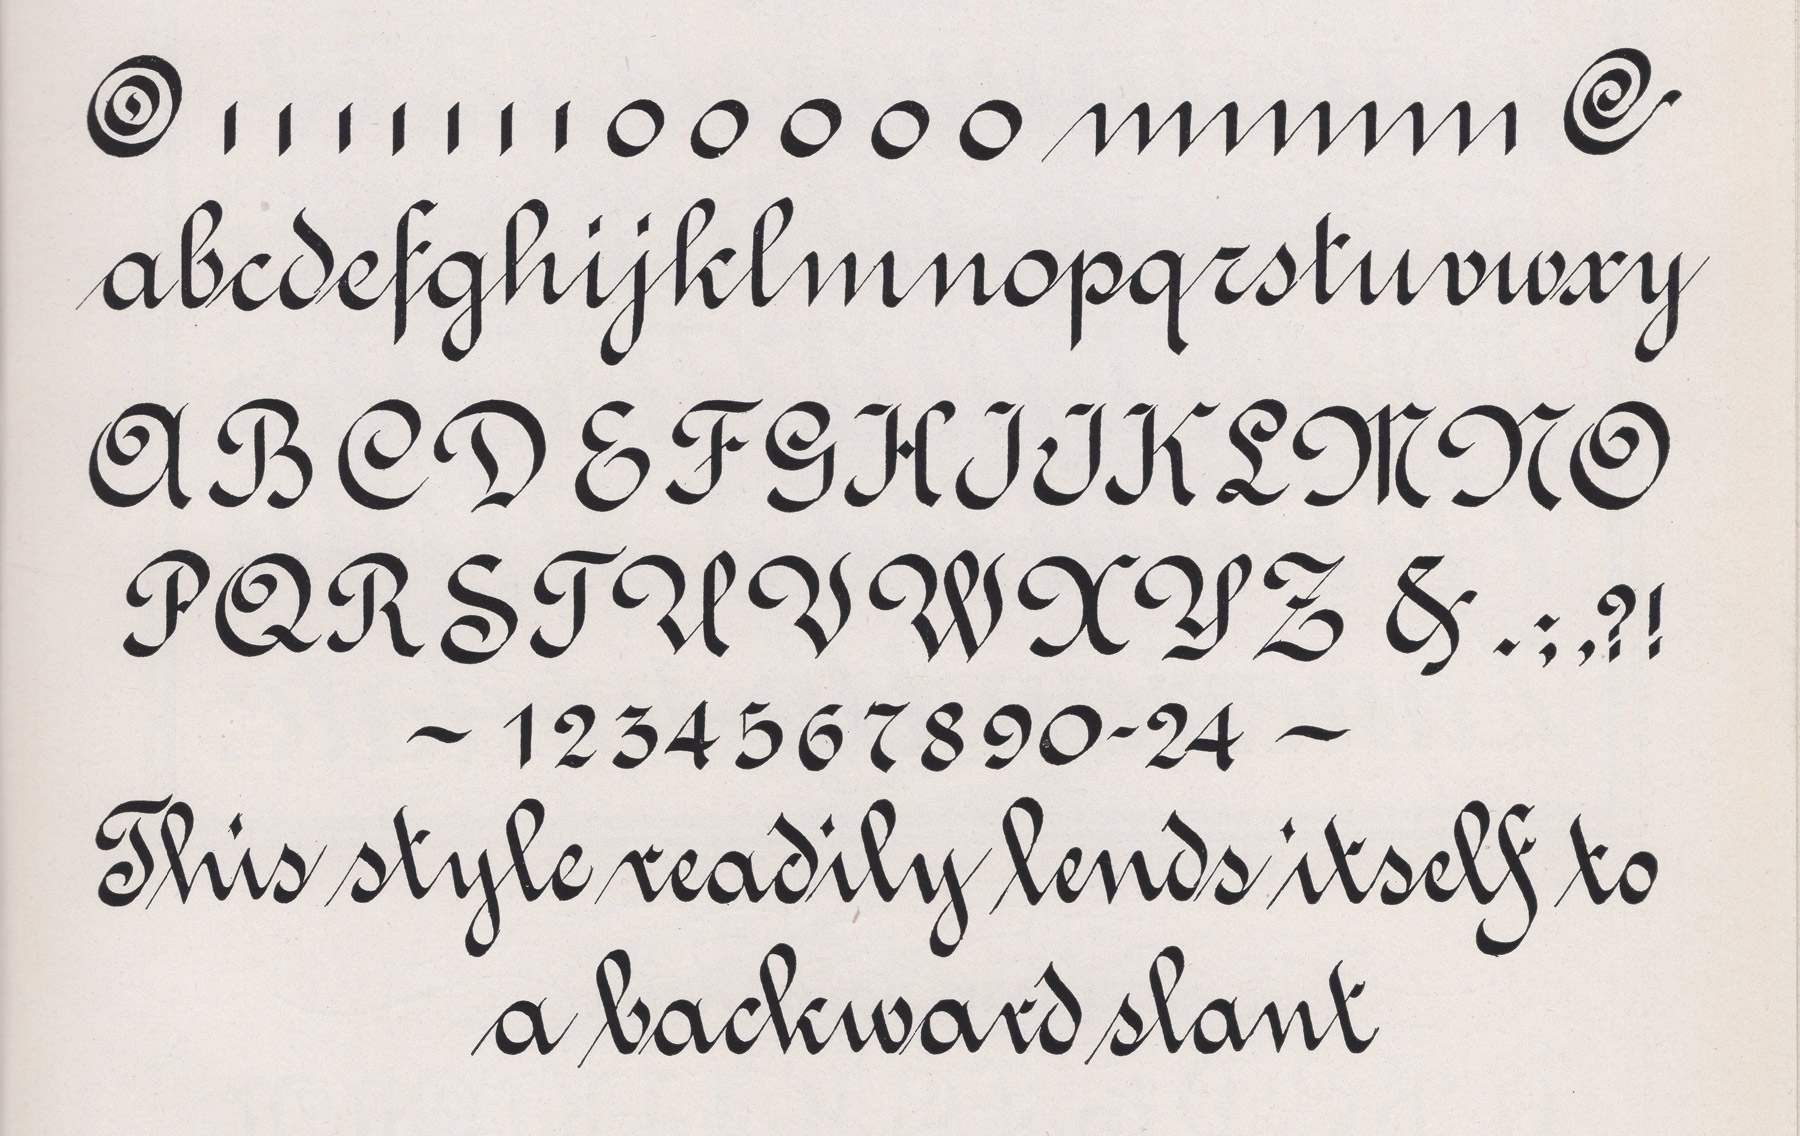 Charles Norder Dreaming in Script French Roundhand